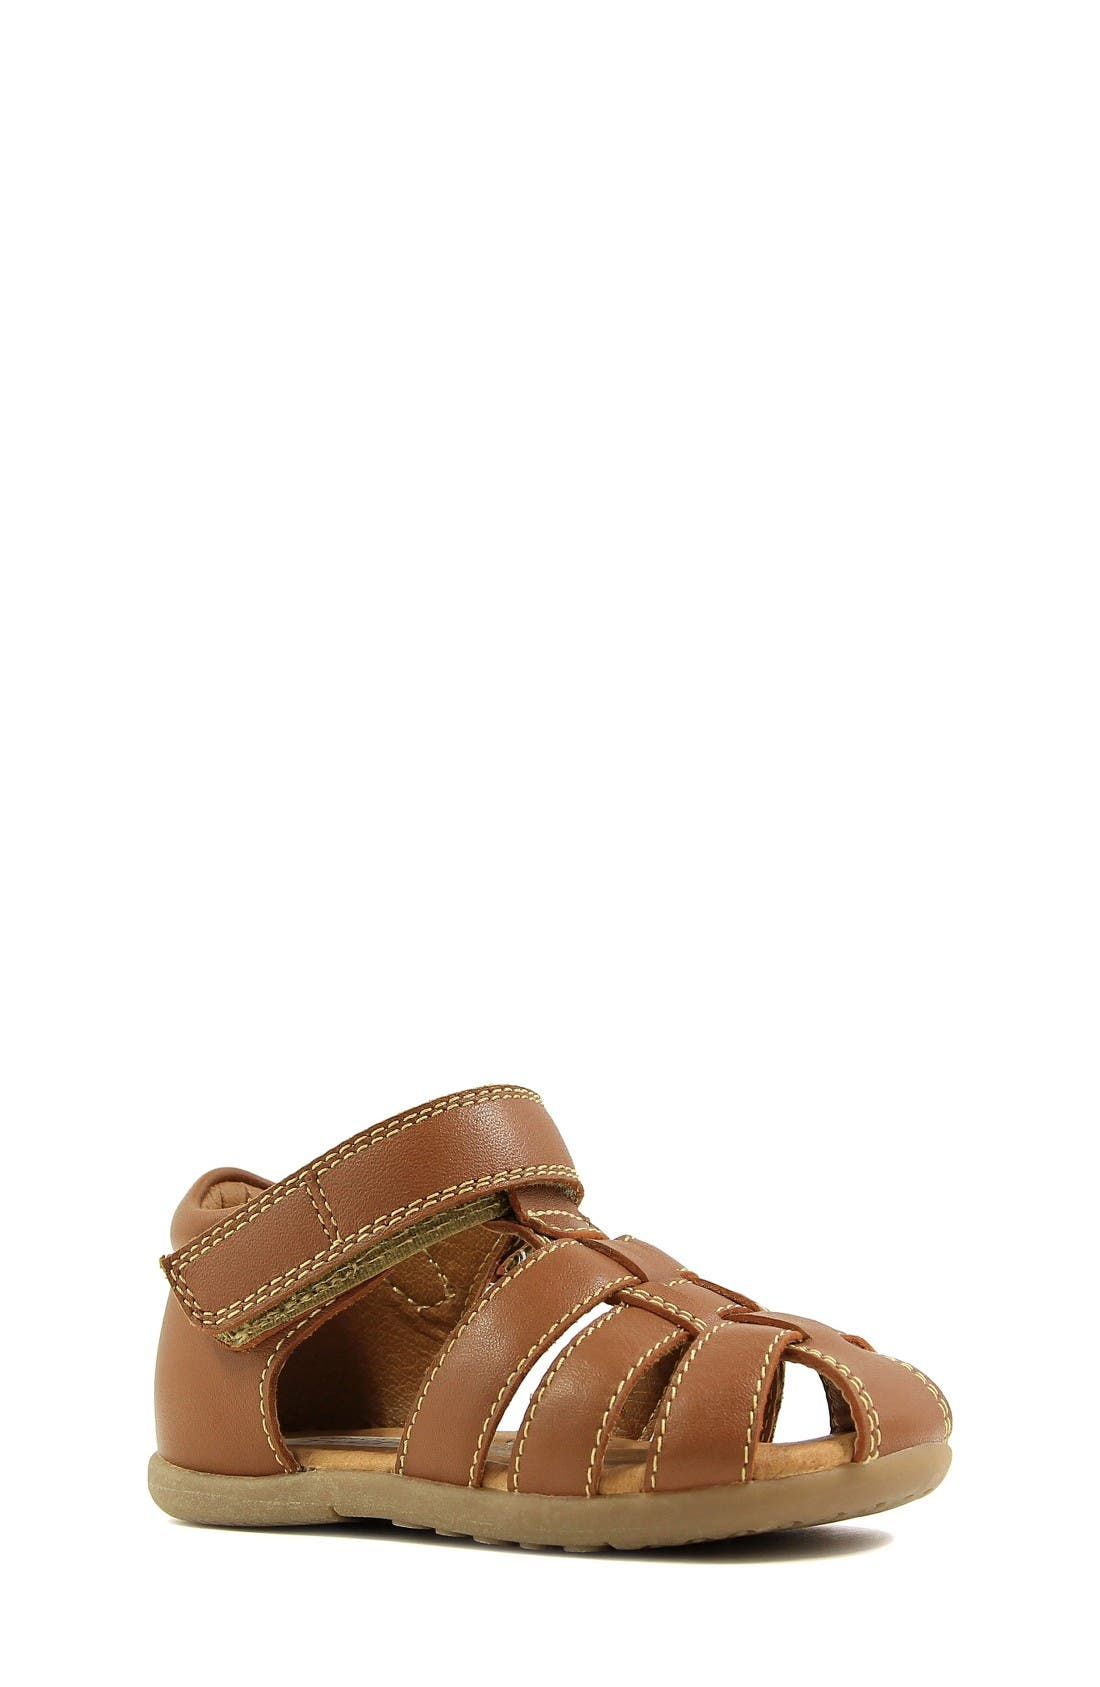 Ryker Sandal,                         Main,                         color, Saddle Tan Leather